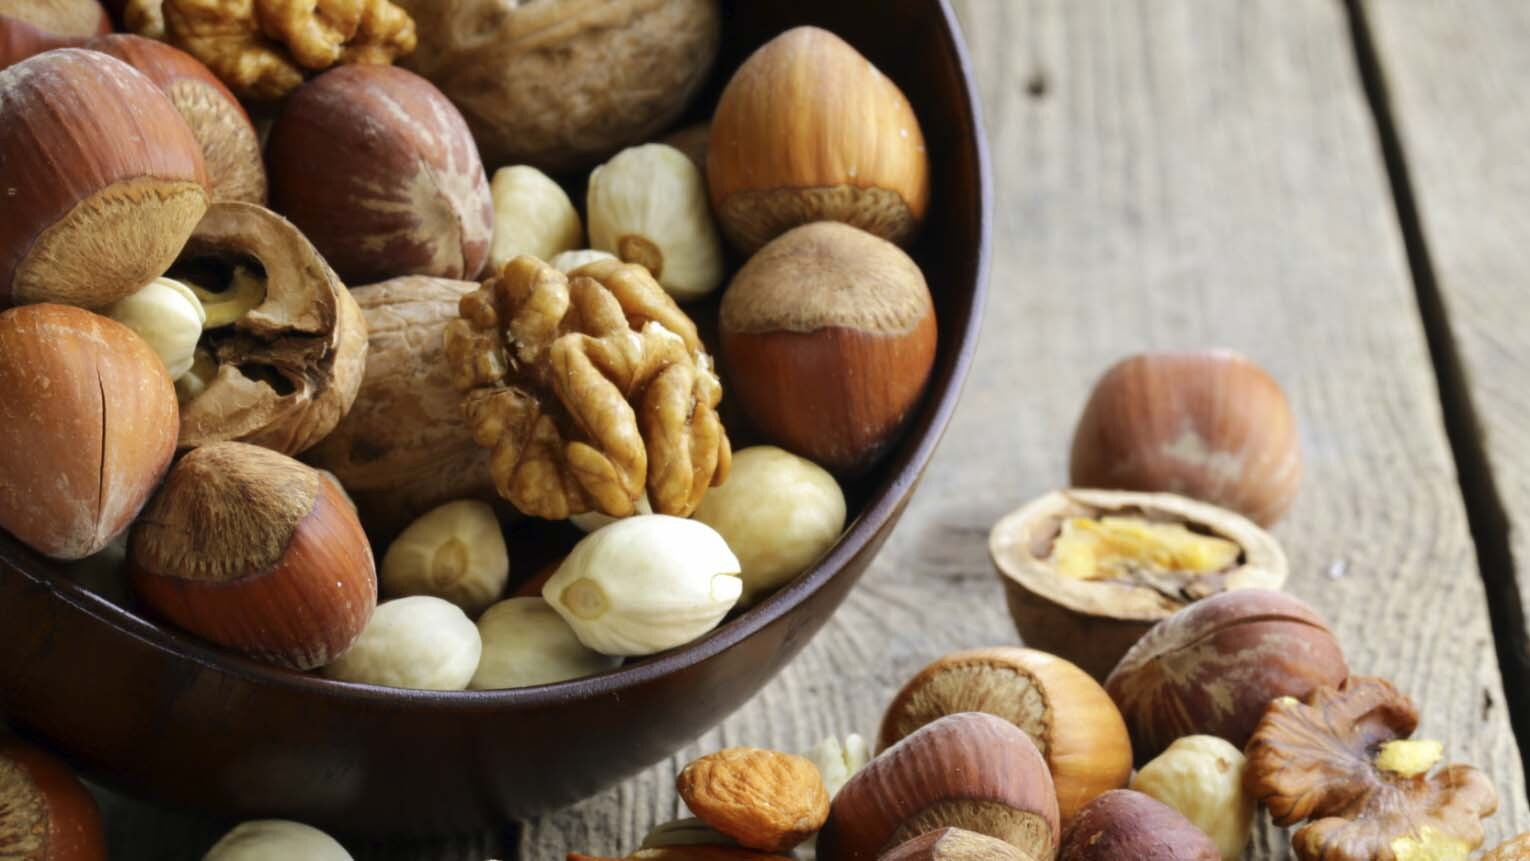 Nibble Nuts to Live Longer